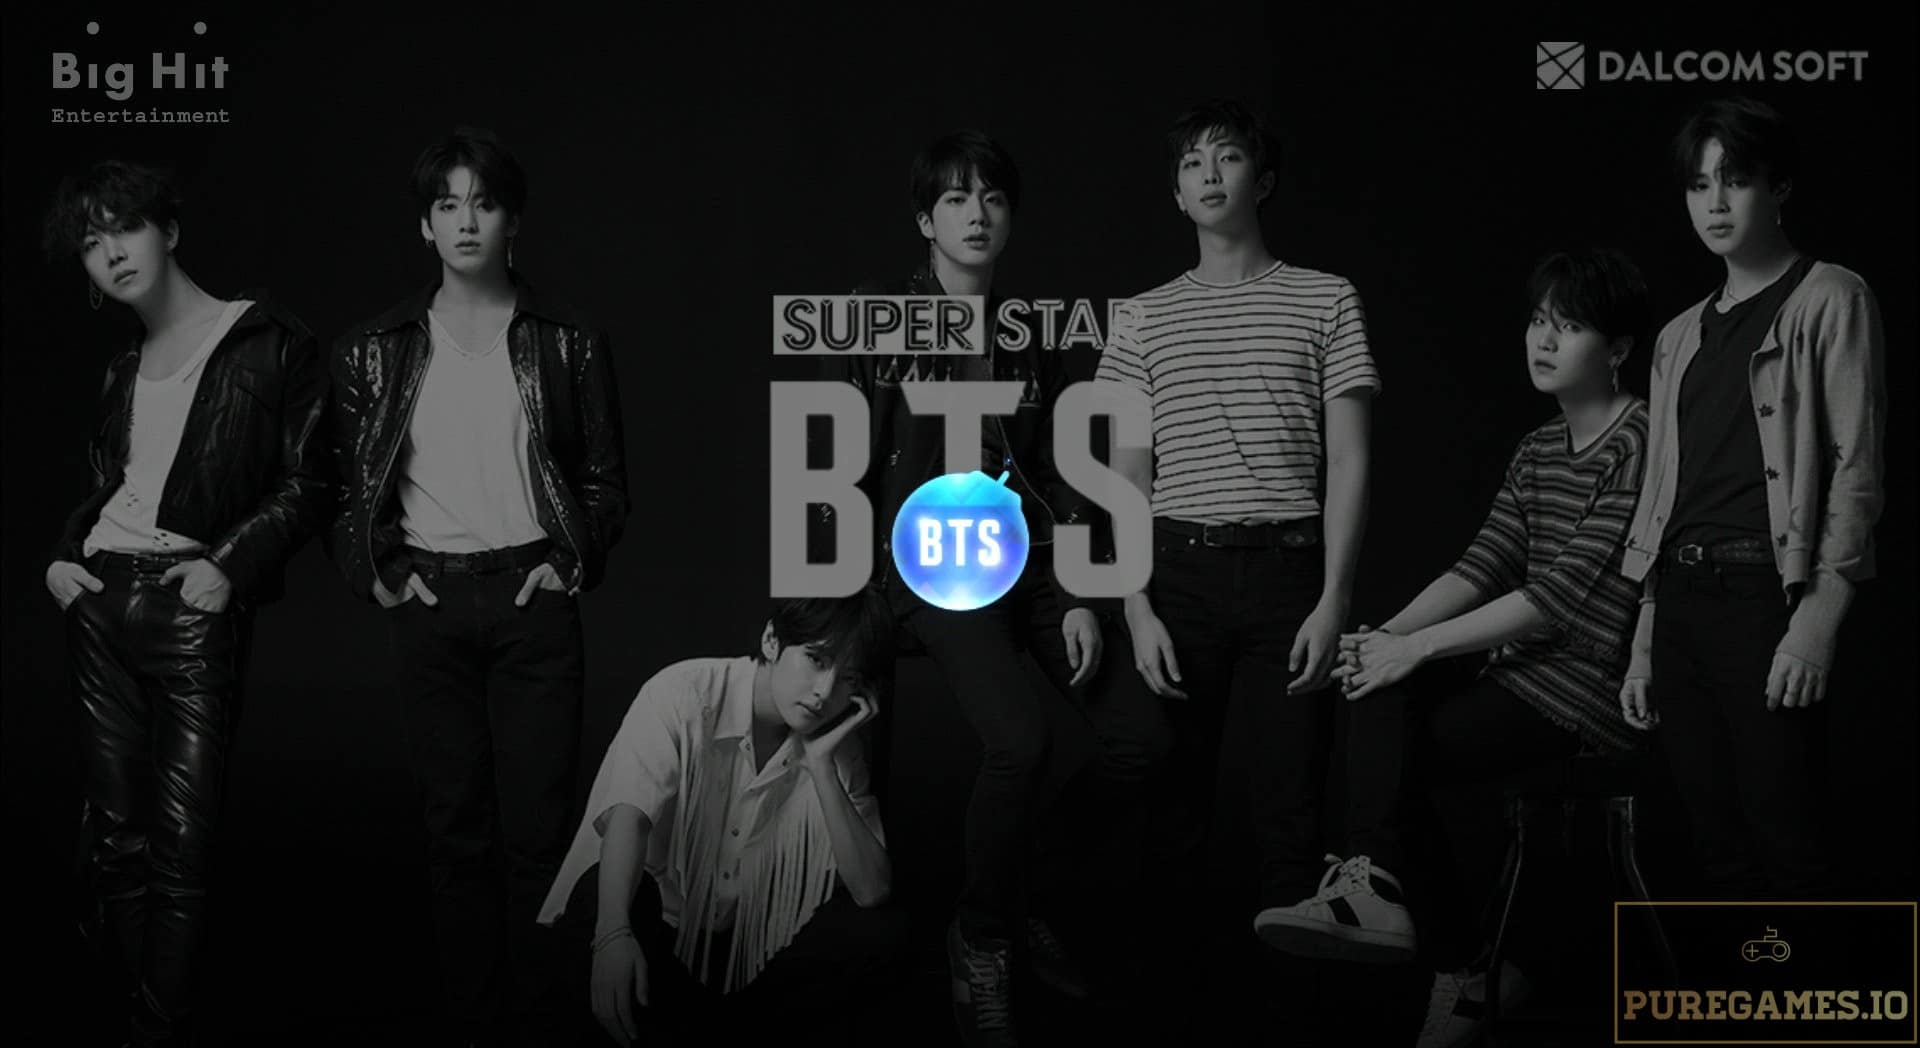 Download SuperStar BTS MOD APK - For Android/iOS 6